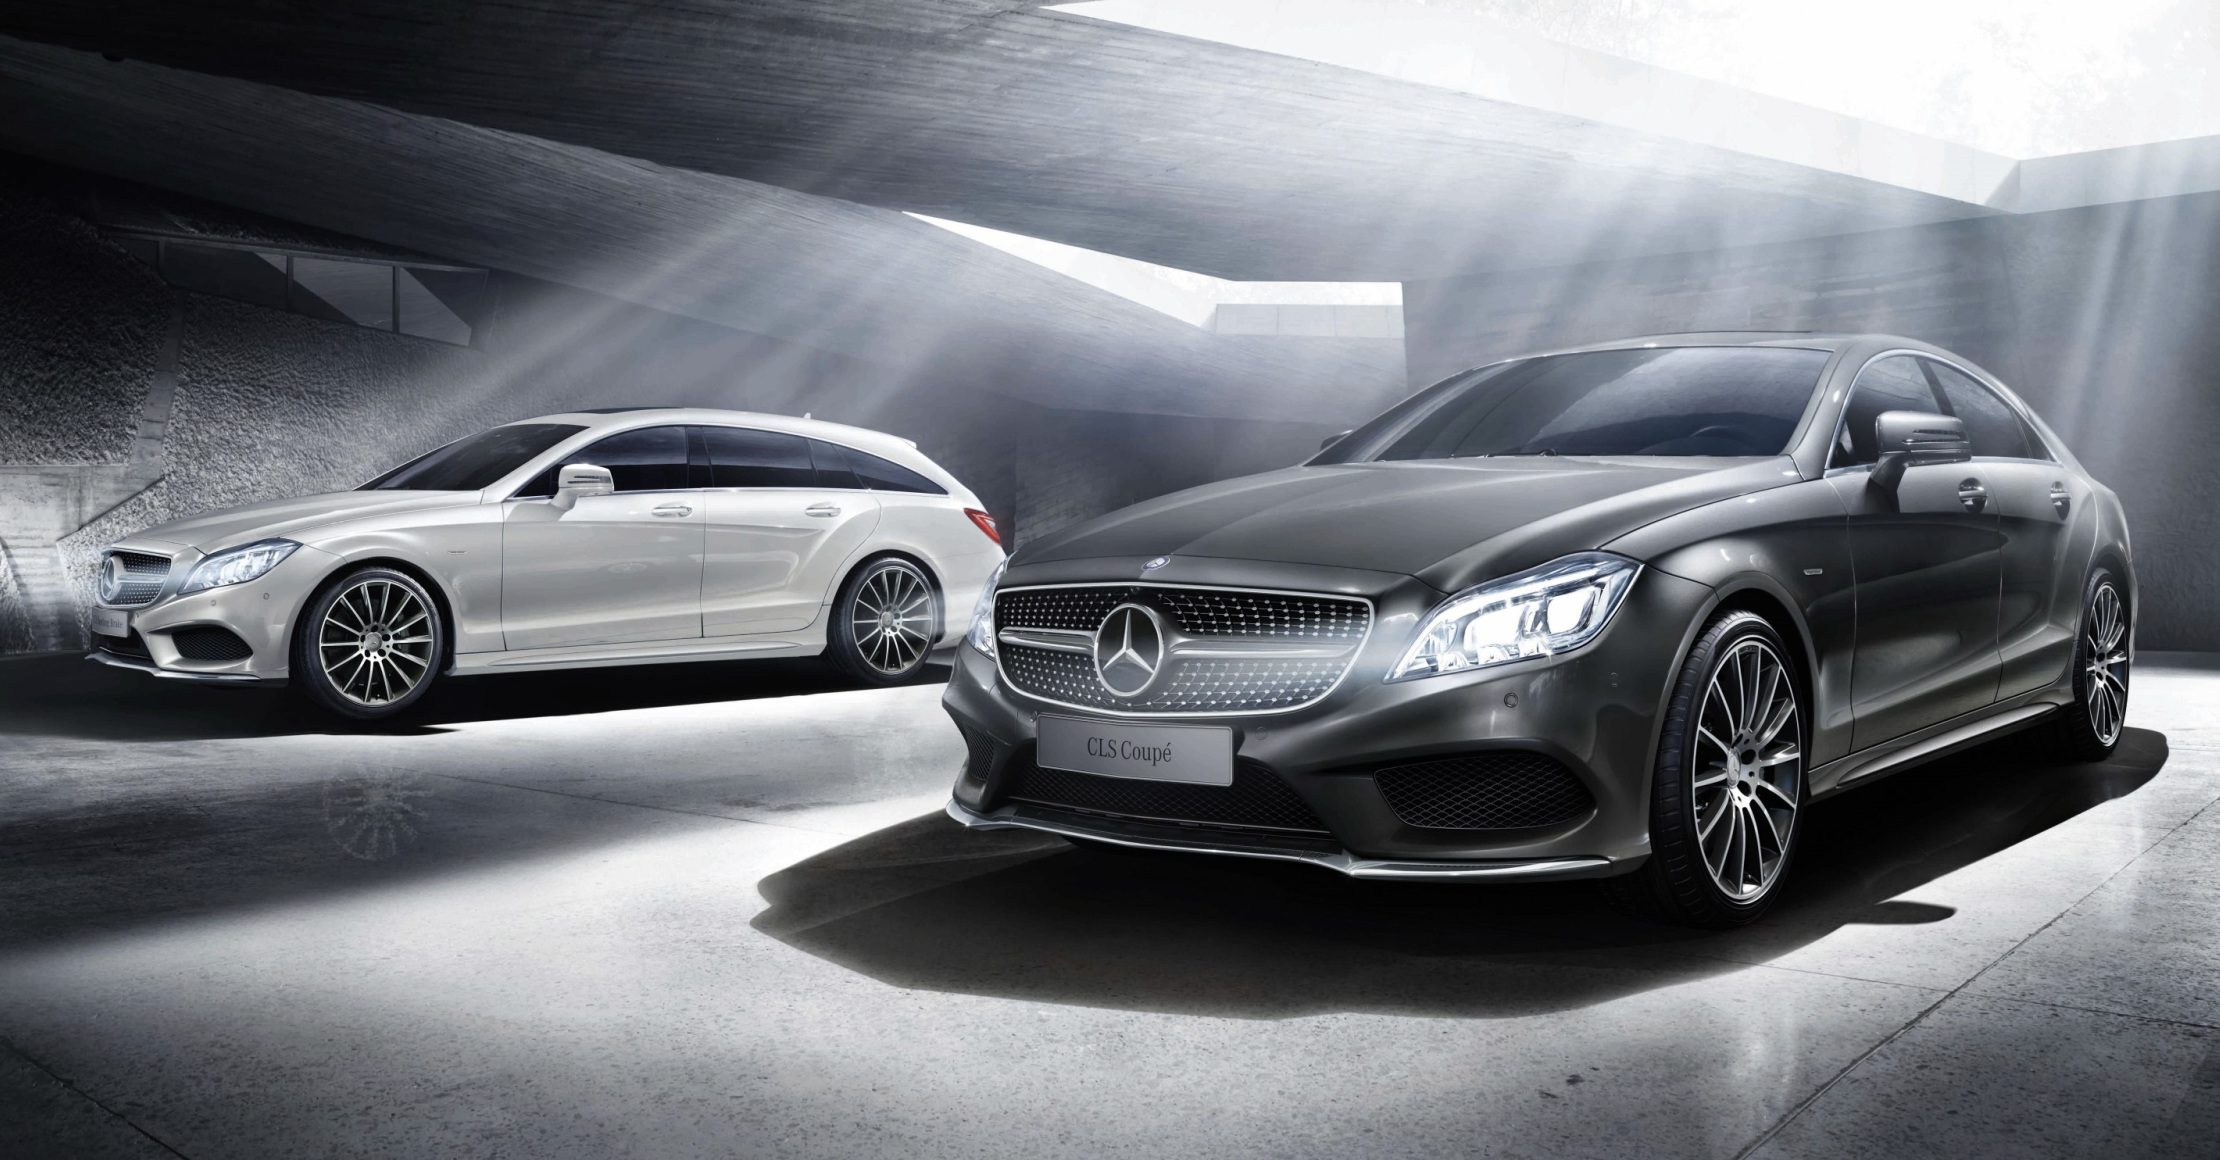 mercedes benz cls coupe and cls shooting brake final edition styling package officially revealed. Black Bedroom Furniture Sets. Home Design Ideas